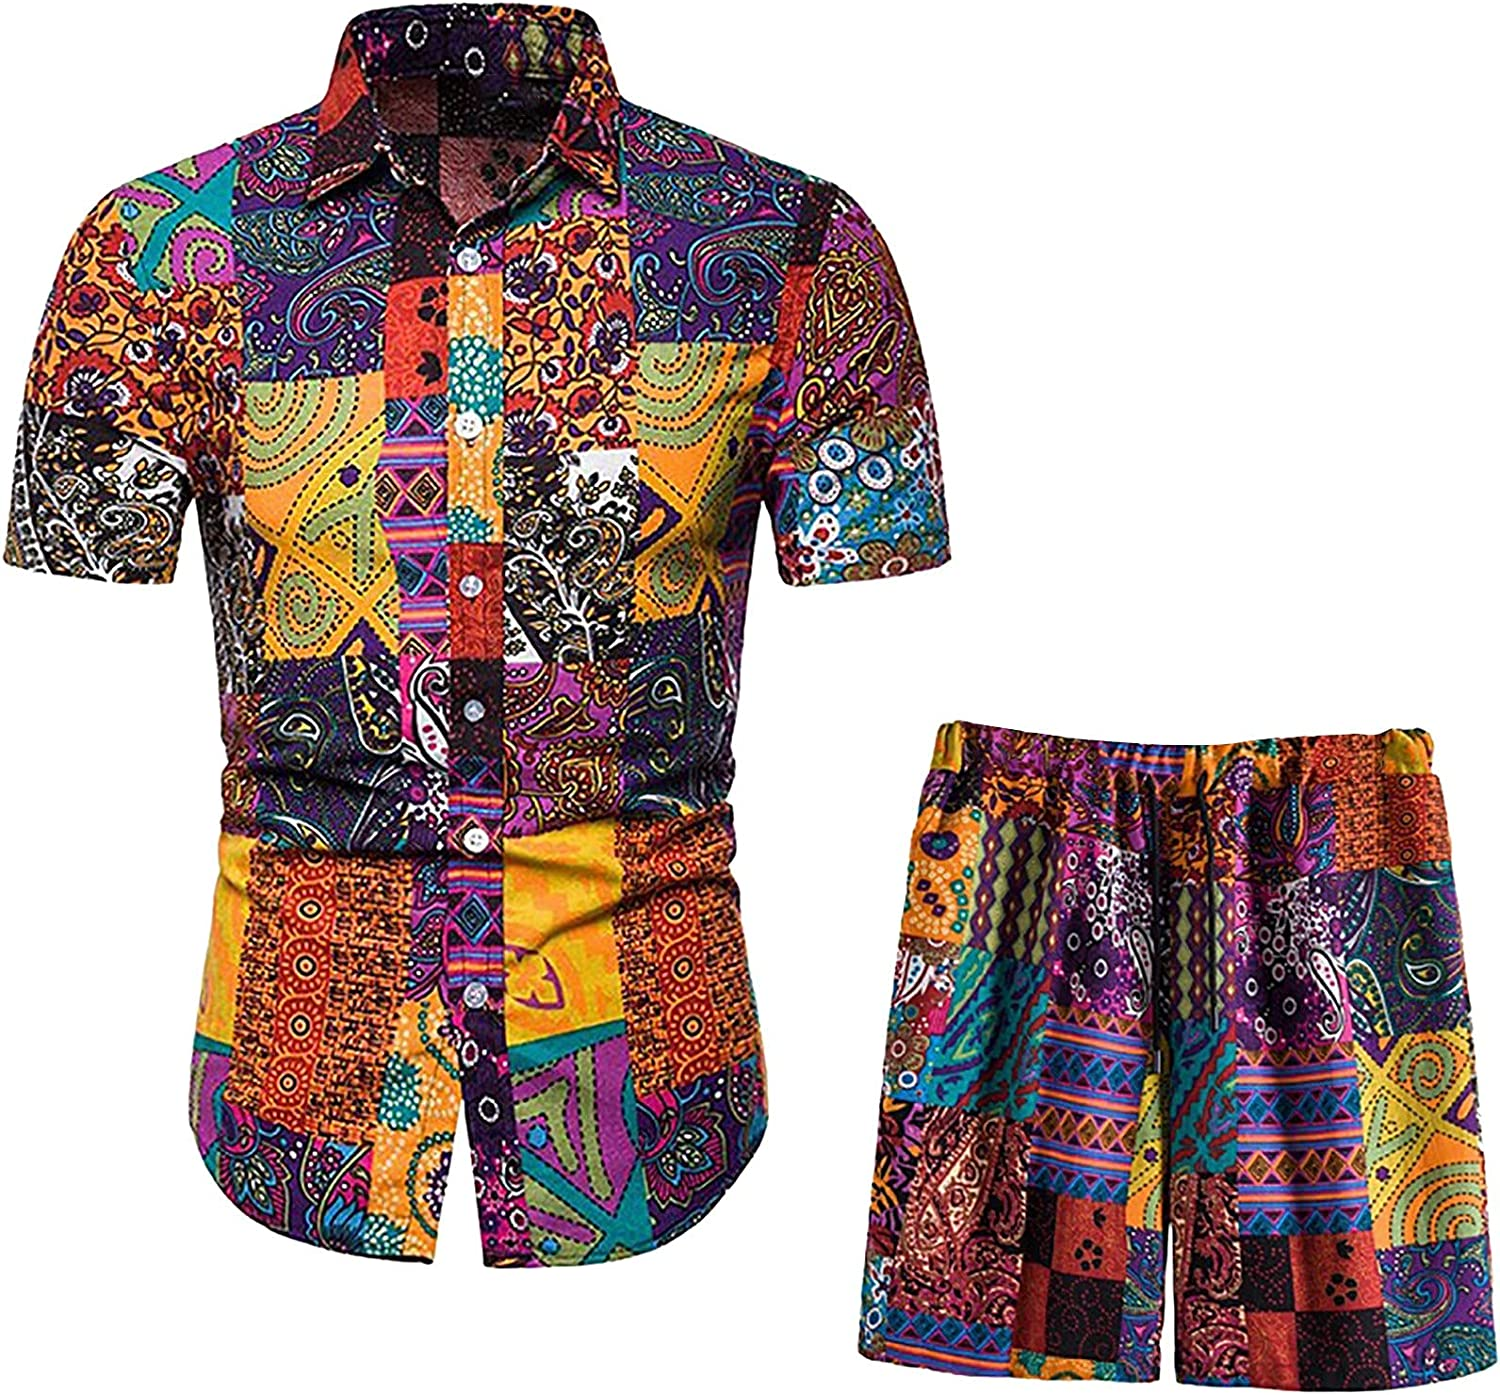 Men's Hawaiian 2 Piece Outfits Shirts and Shorts Suit Casual Printed Button Down Shirt Suits